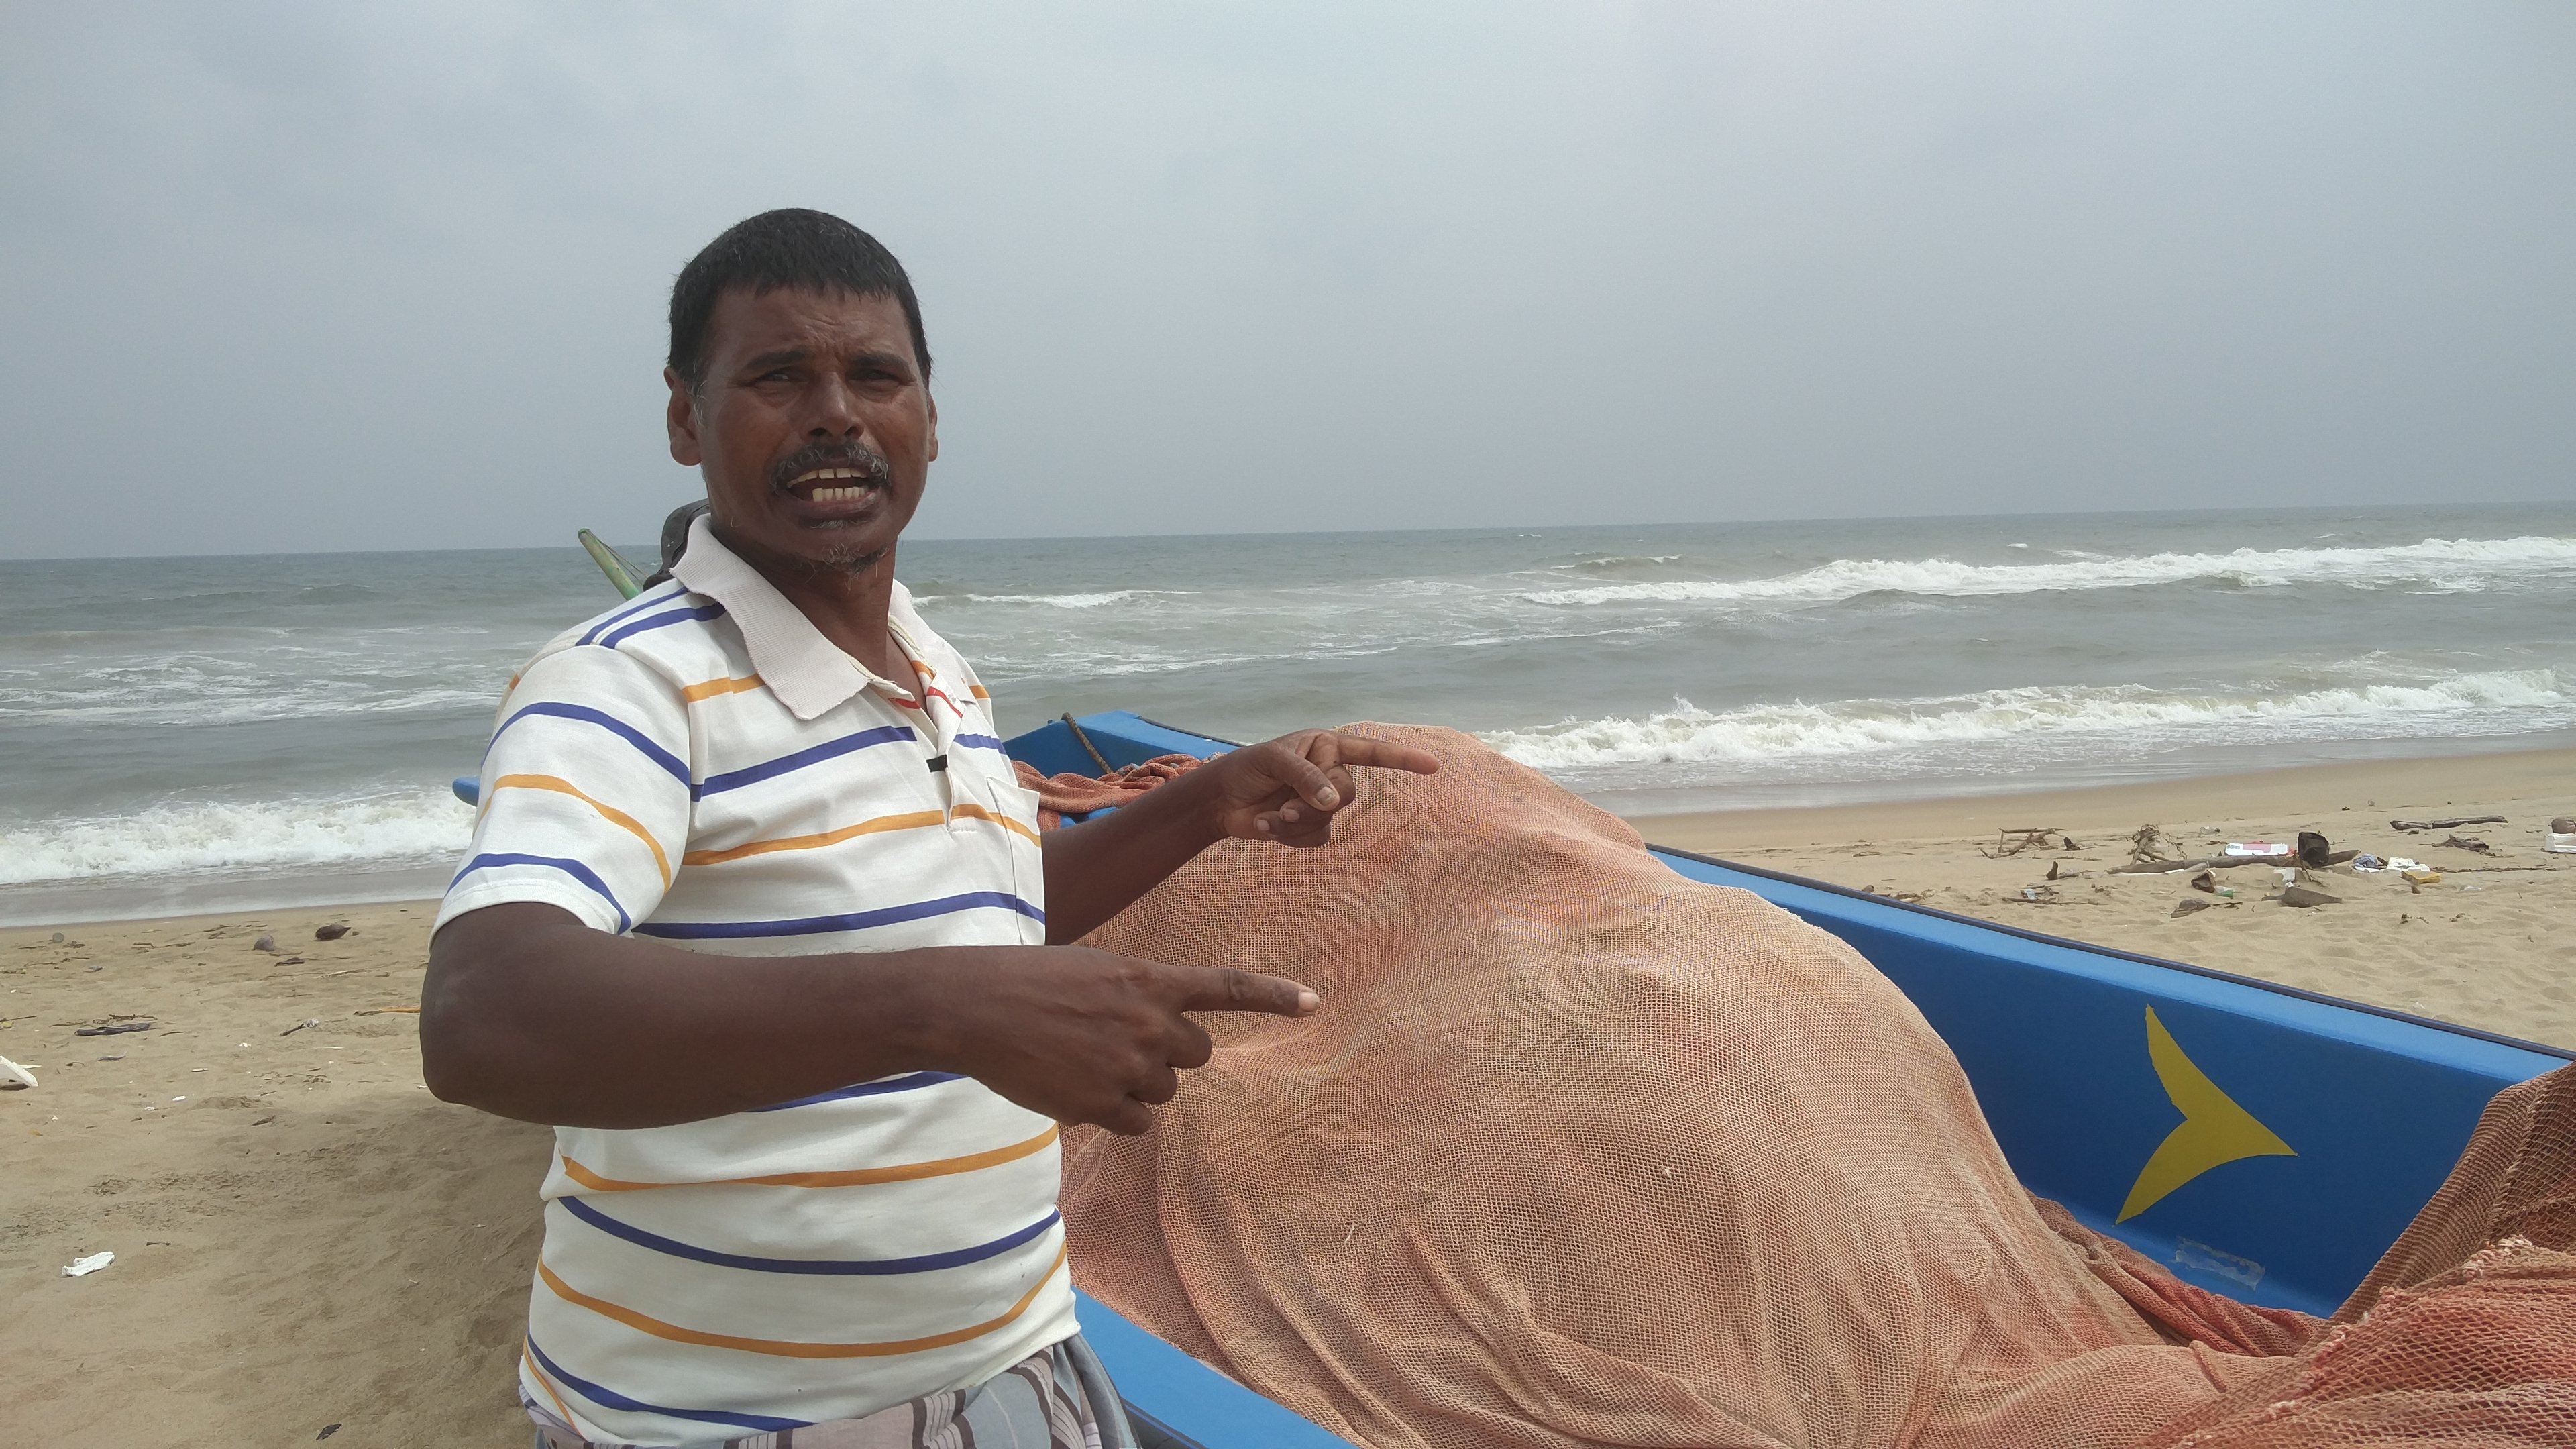 Palayam, president of the Ururkuppam Fishermen Cooperative Society, says the Adyar's waters contain high levels of chemical waste. (Credit: Vinita Govindarajan)